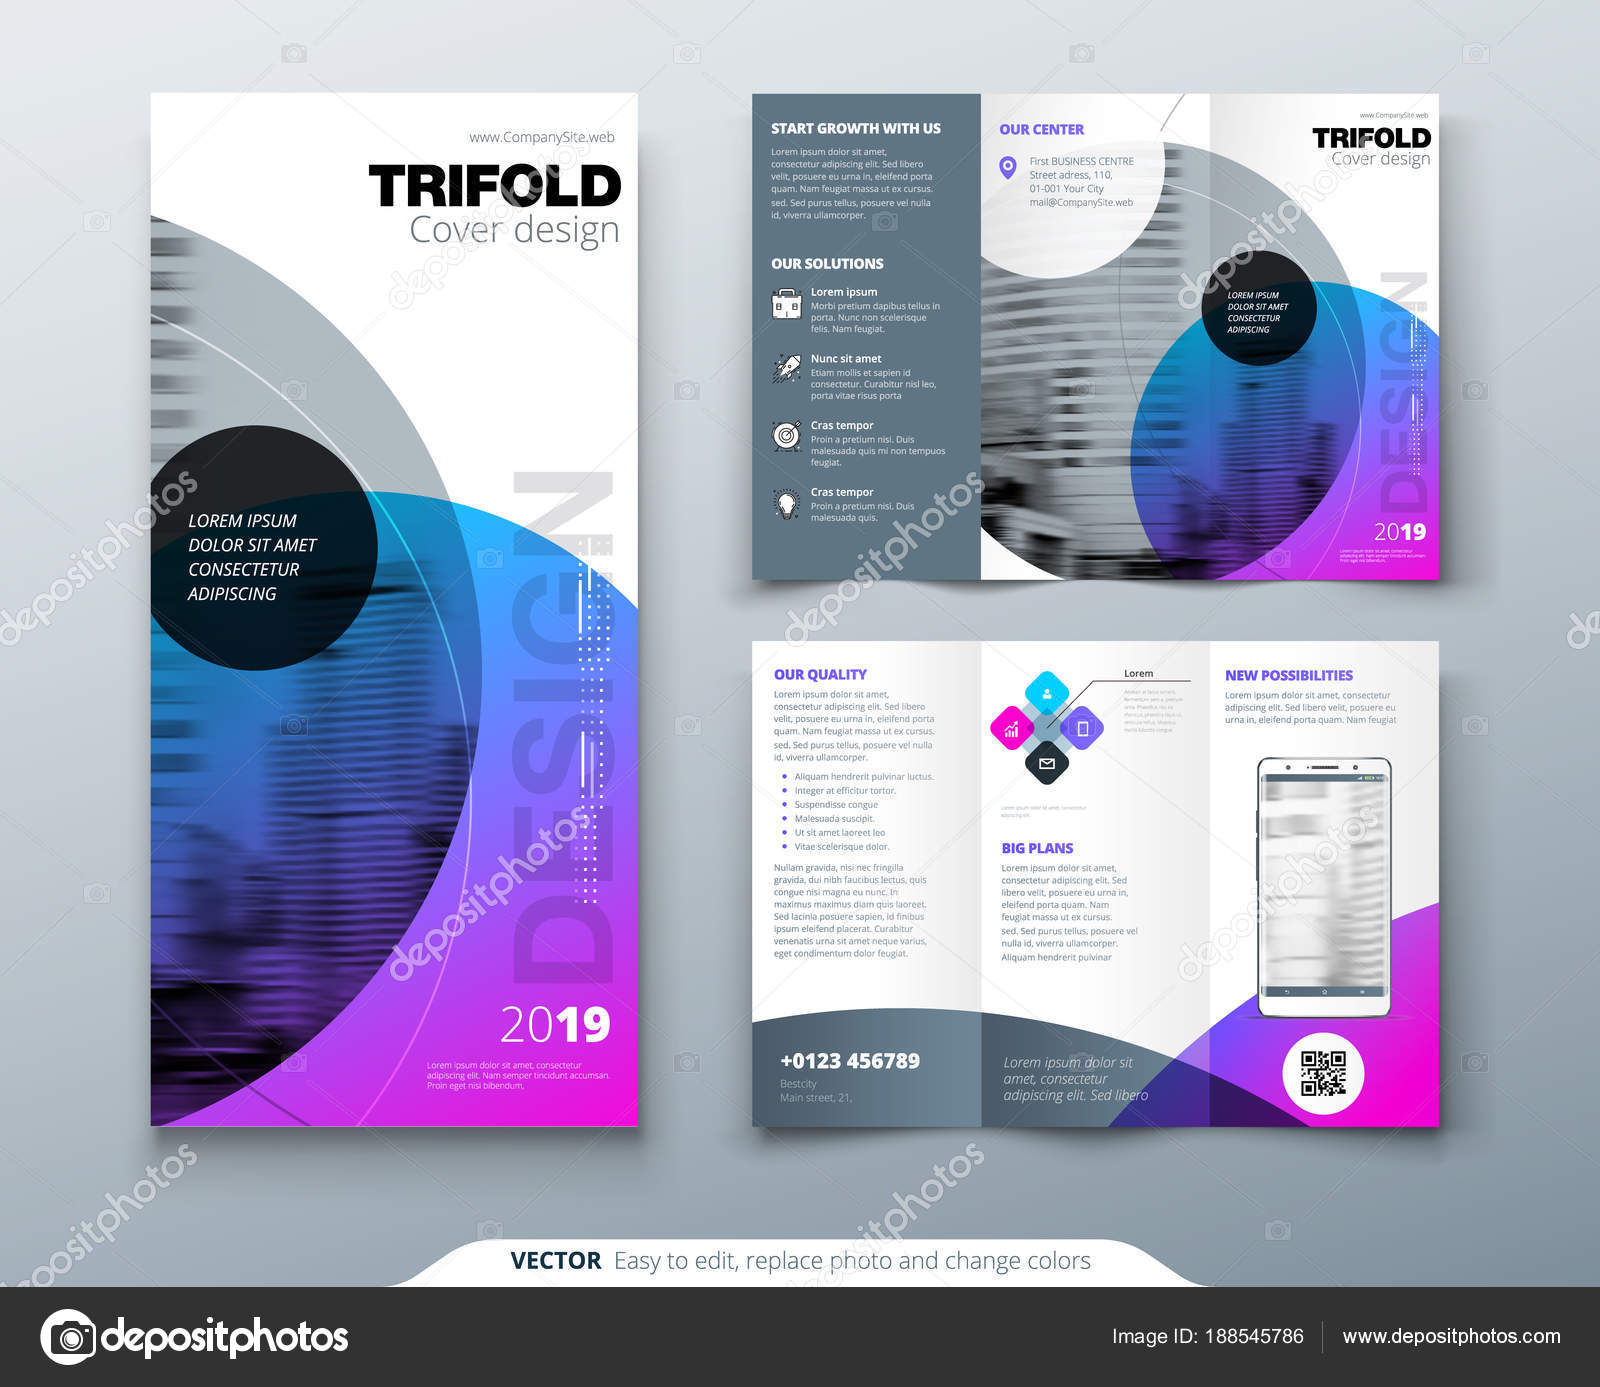 tri fold brochure design purple corporate business template for tri fold flyer layout with. Black Bedroom Furniture Sets. Home Design Ideas